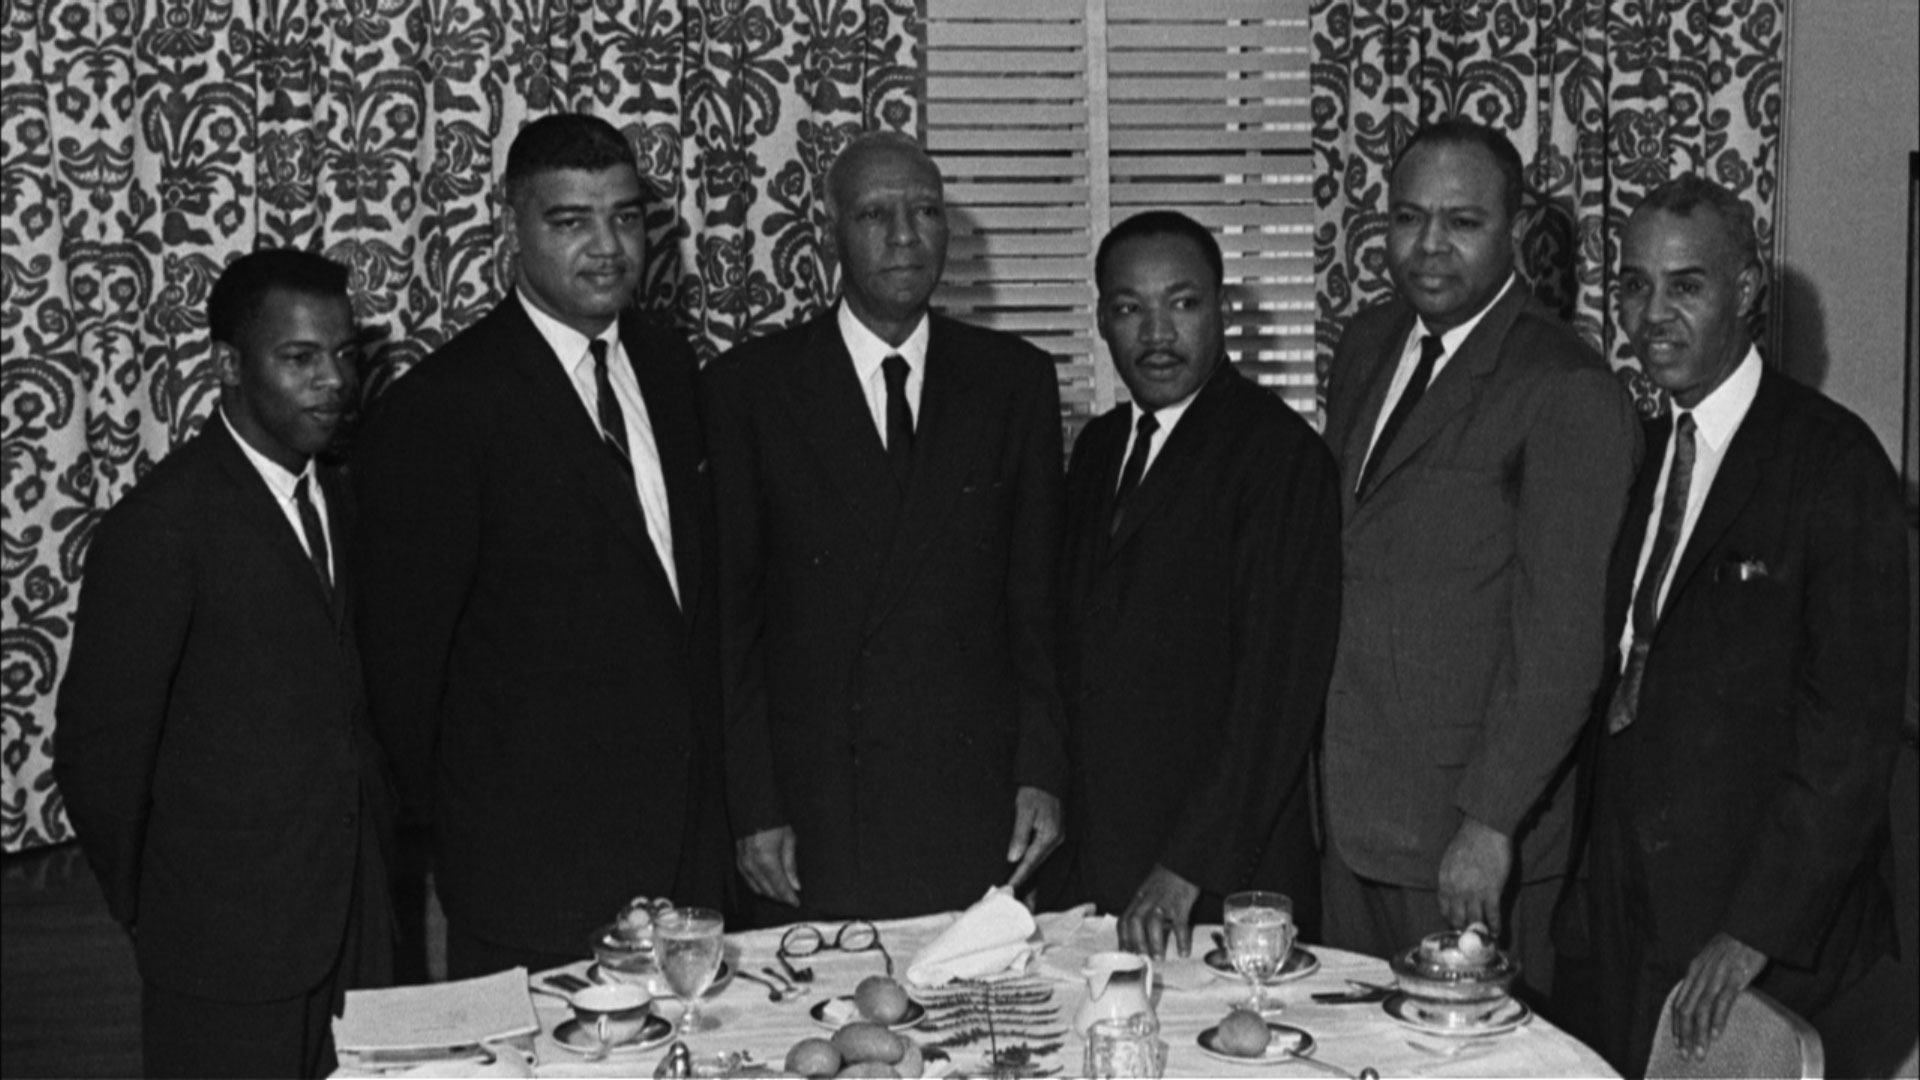 leaders of the civil rights movement explore black history pbs john lewis fighting for change in america